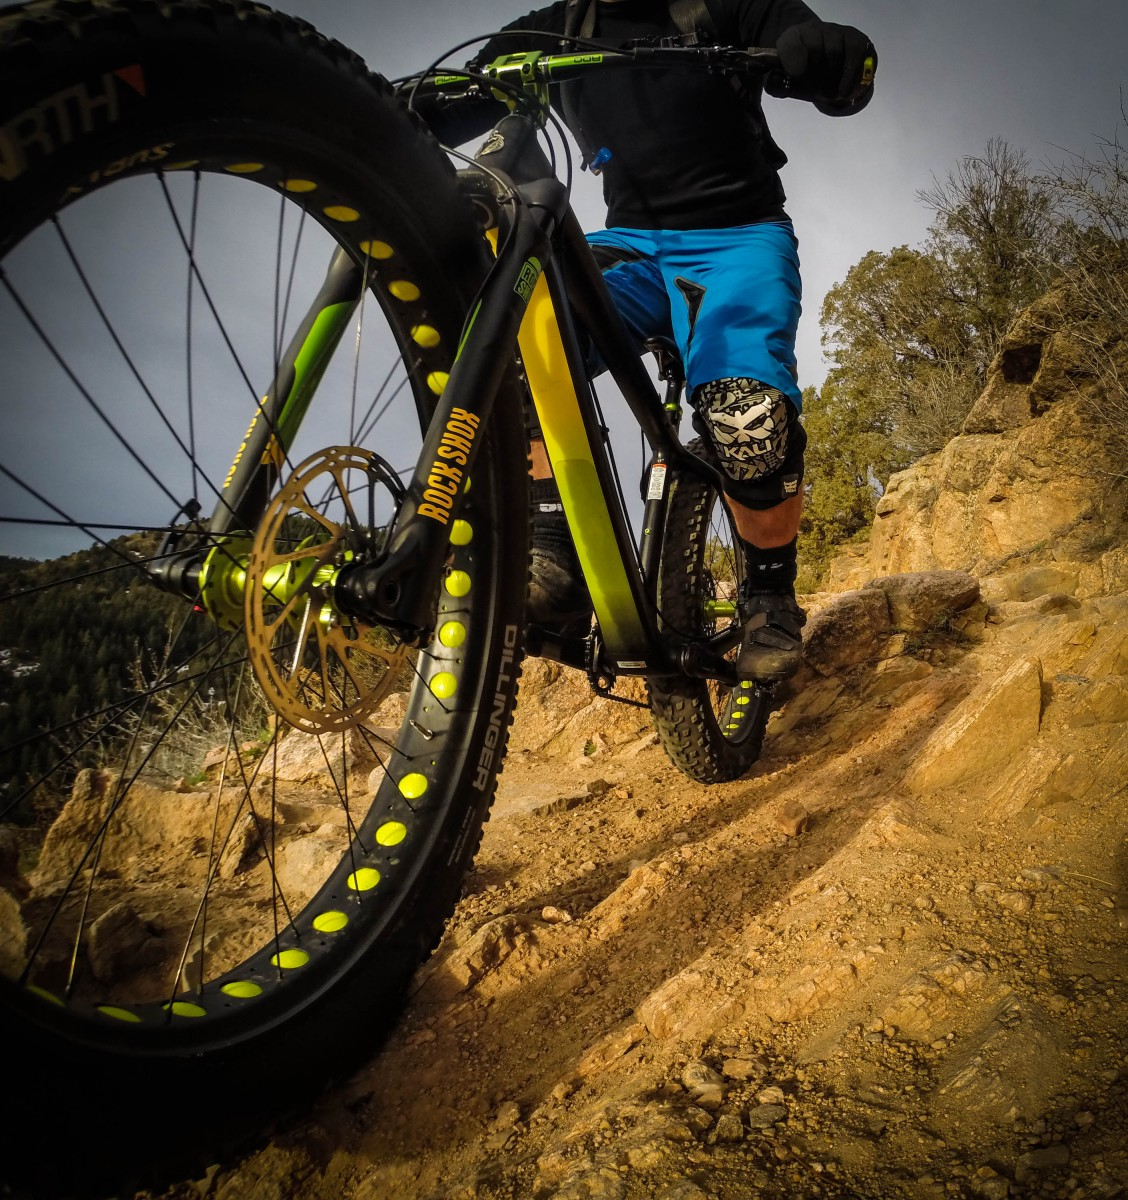 Compress that fork! It's easy to burn through travel when riding hard on rocky trails...but the Bluto can take it!